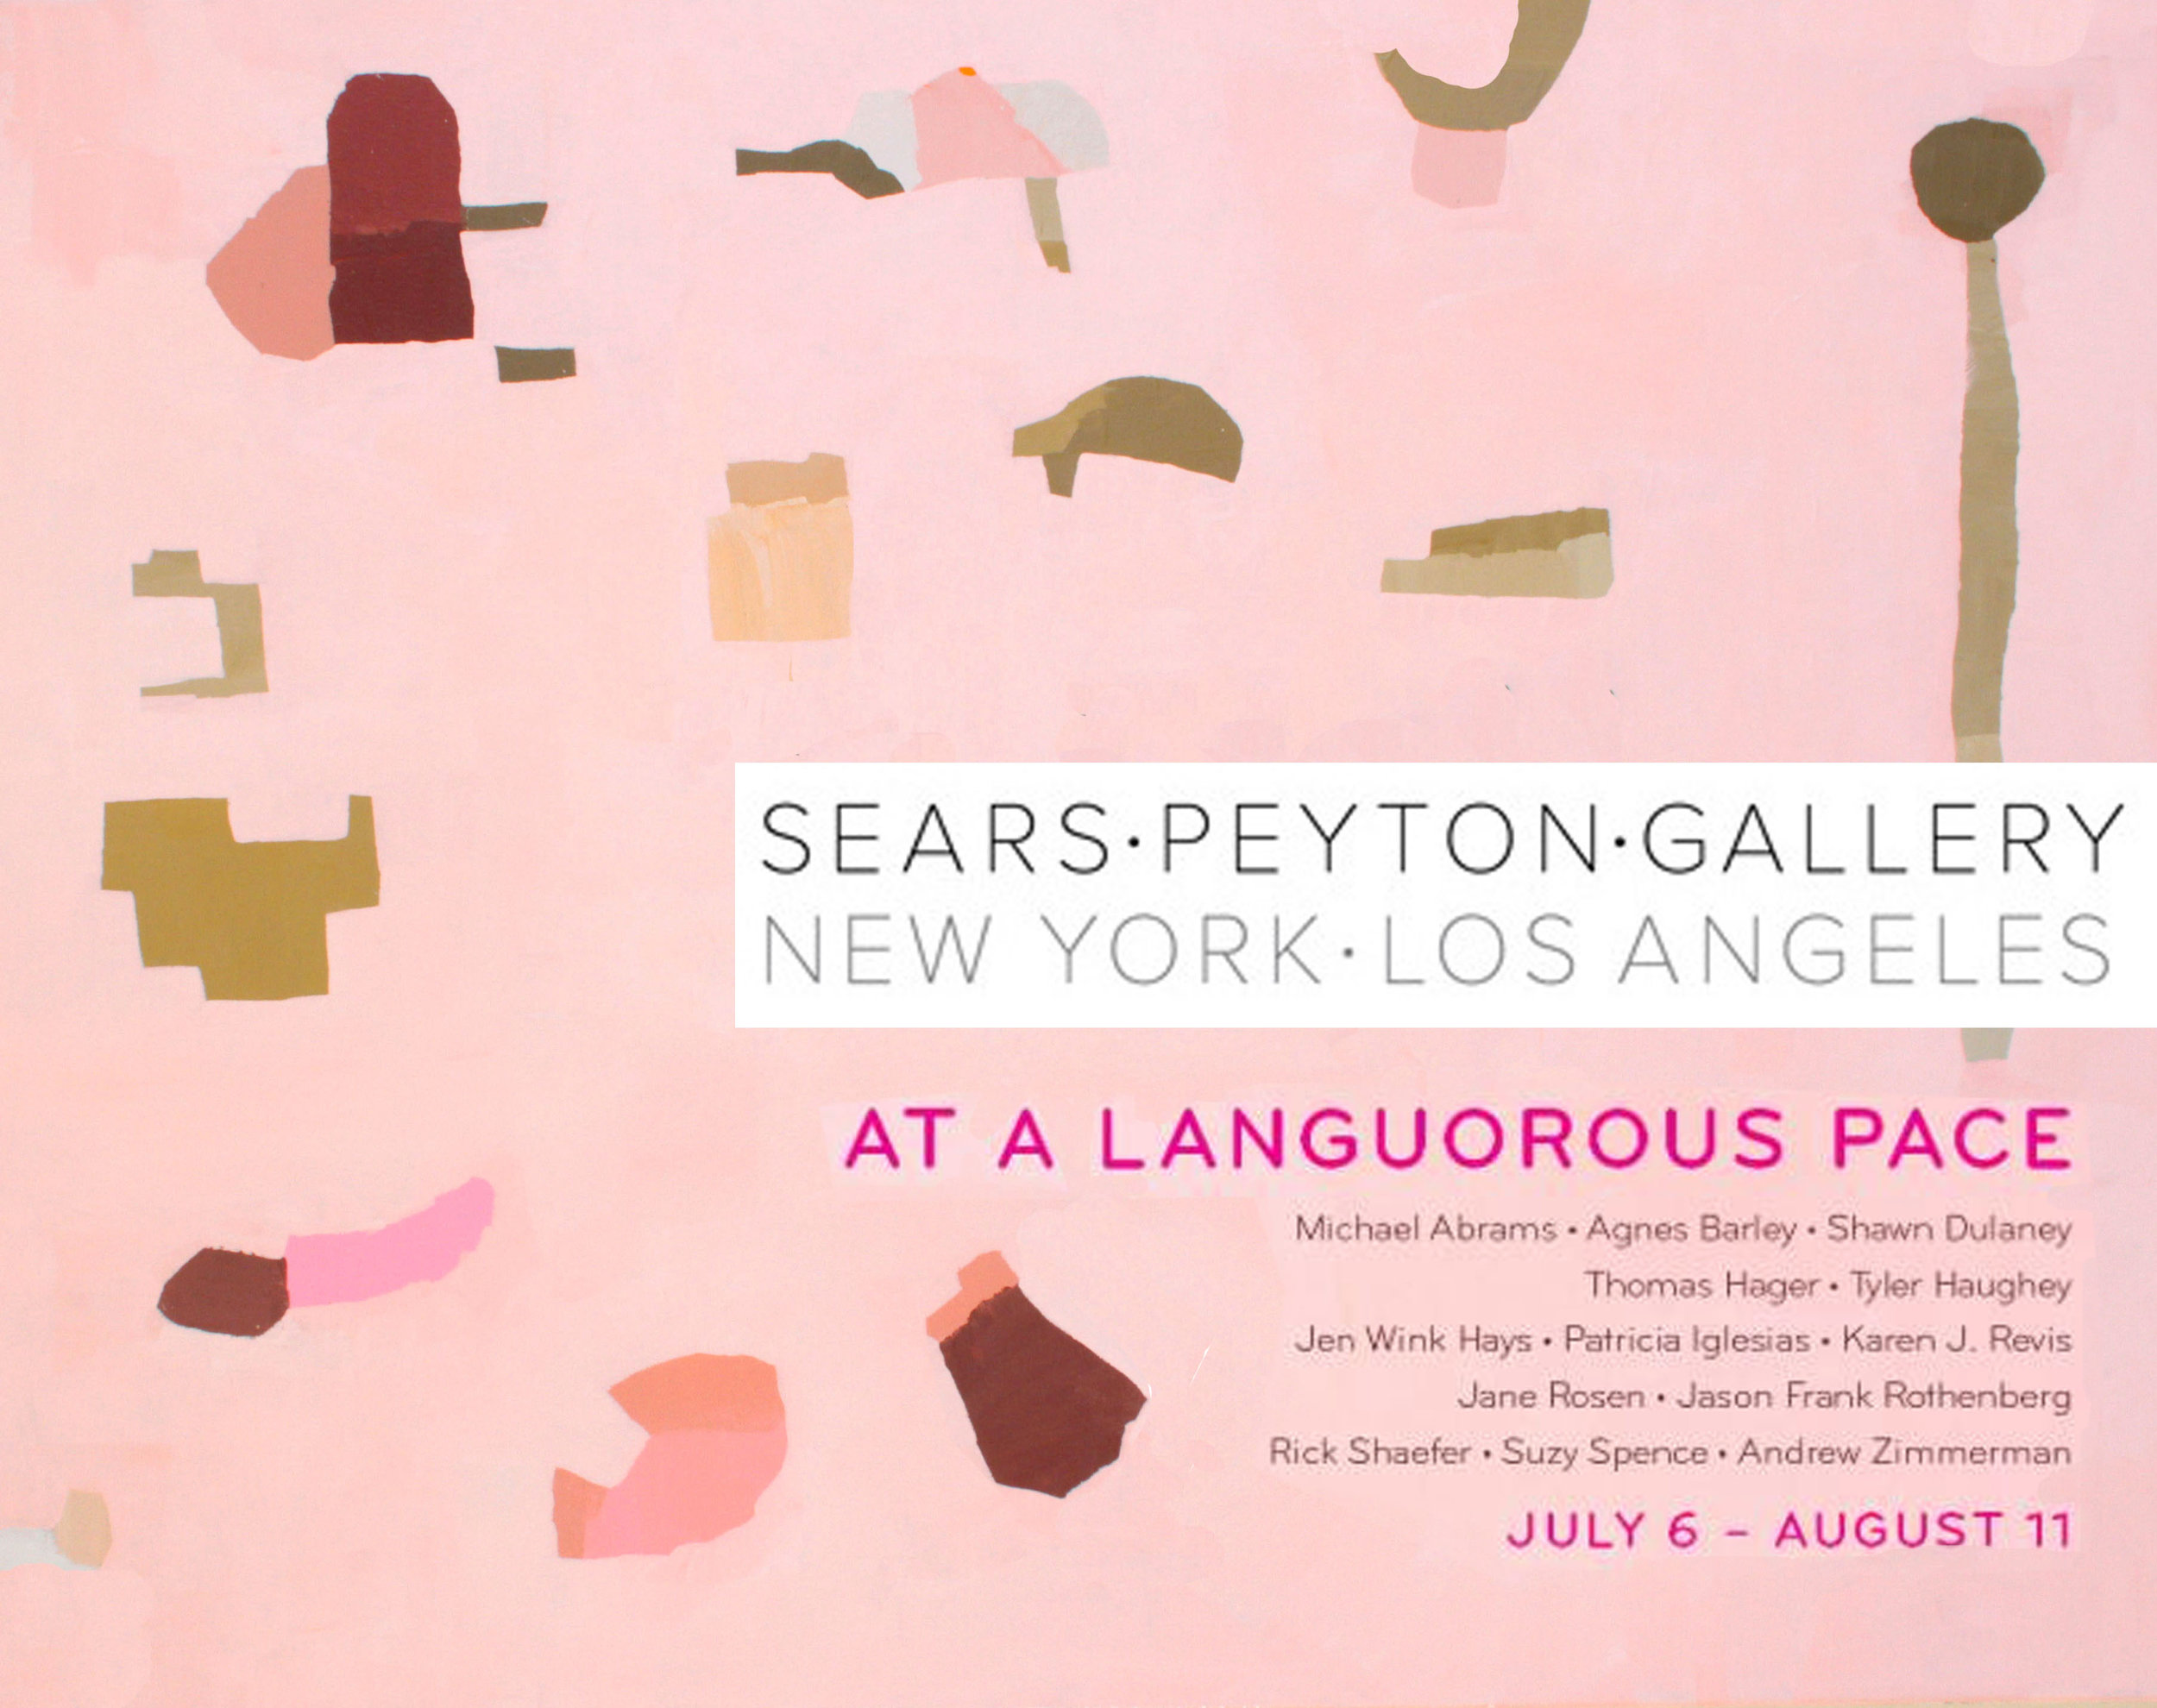 T  h rilled to be joining an amazing group of artists in this summer's group show at Sears Peyton Gallery in NYC.